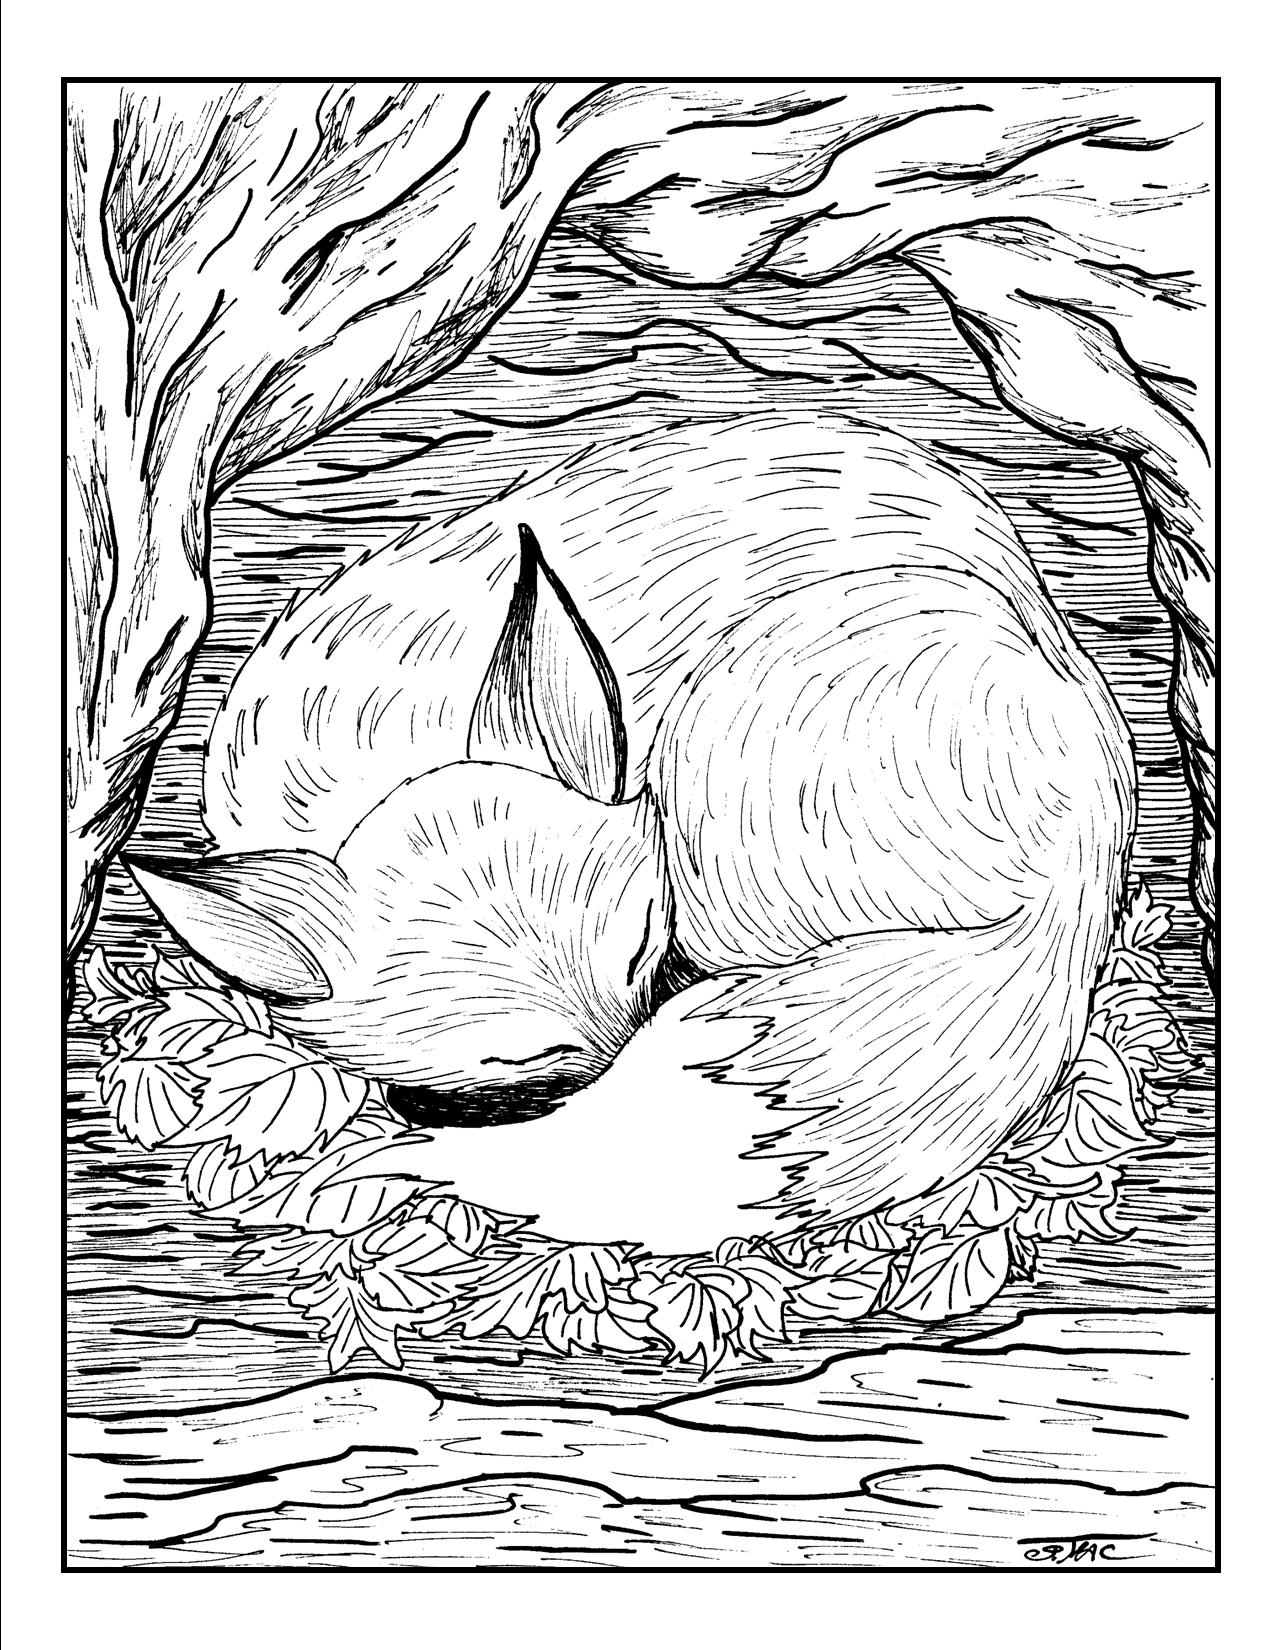 Free Adult Coloring Pages – S.Mac\'s Place to Be